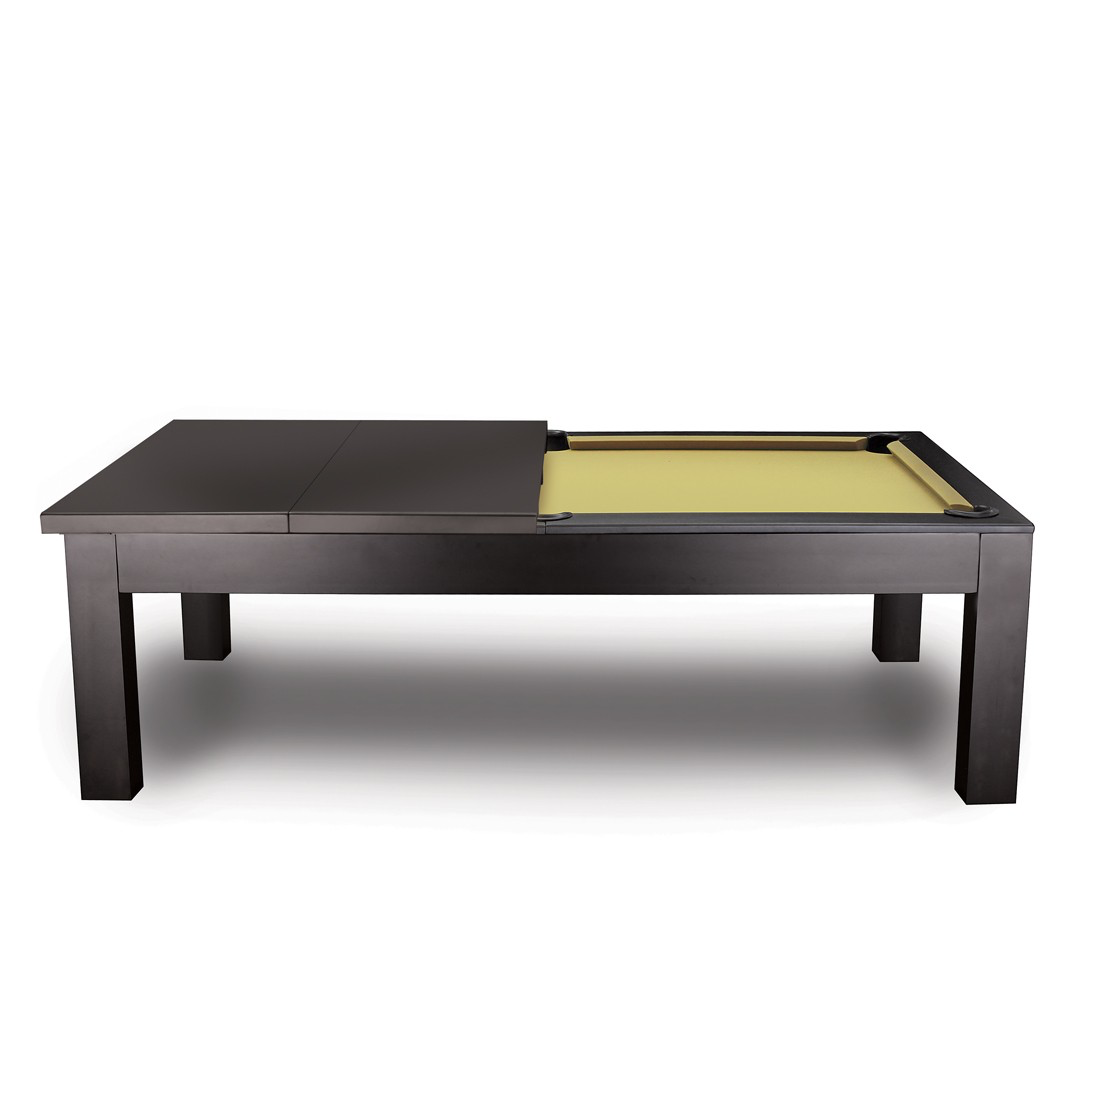 Imperial The Penelope 7Ft with Dining Top - Espresso